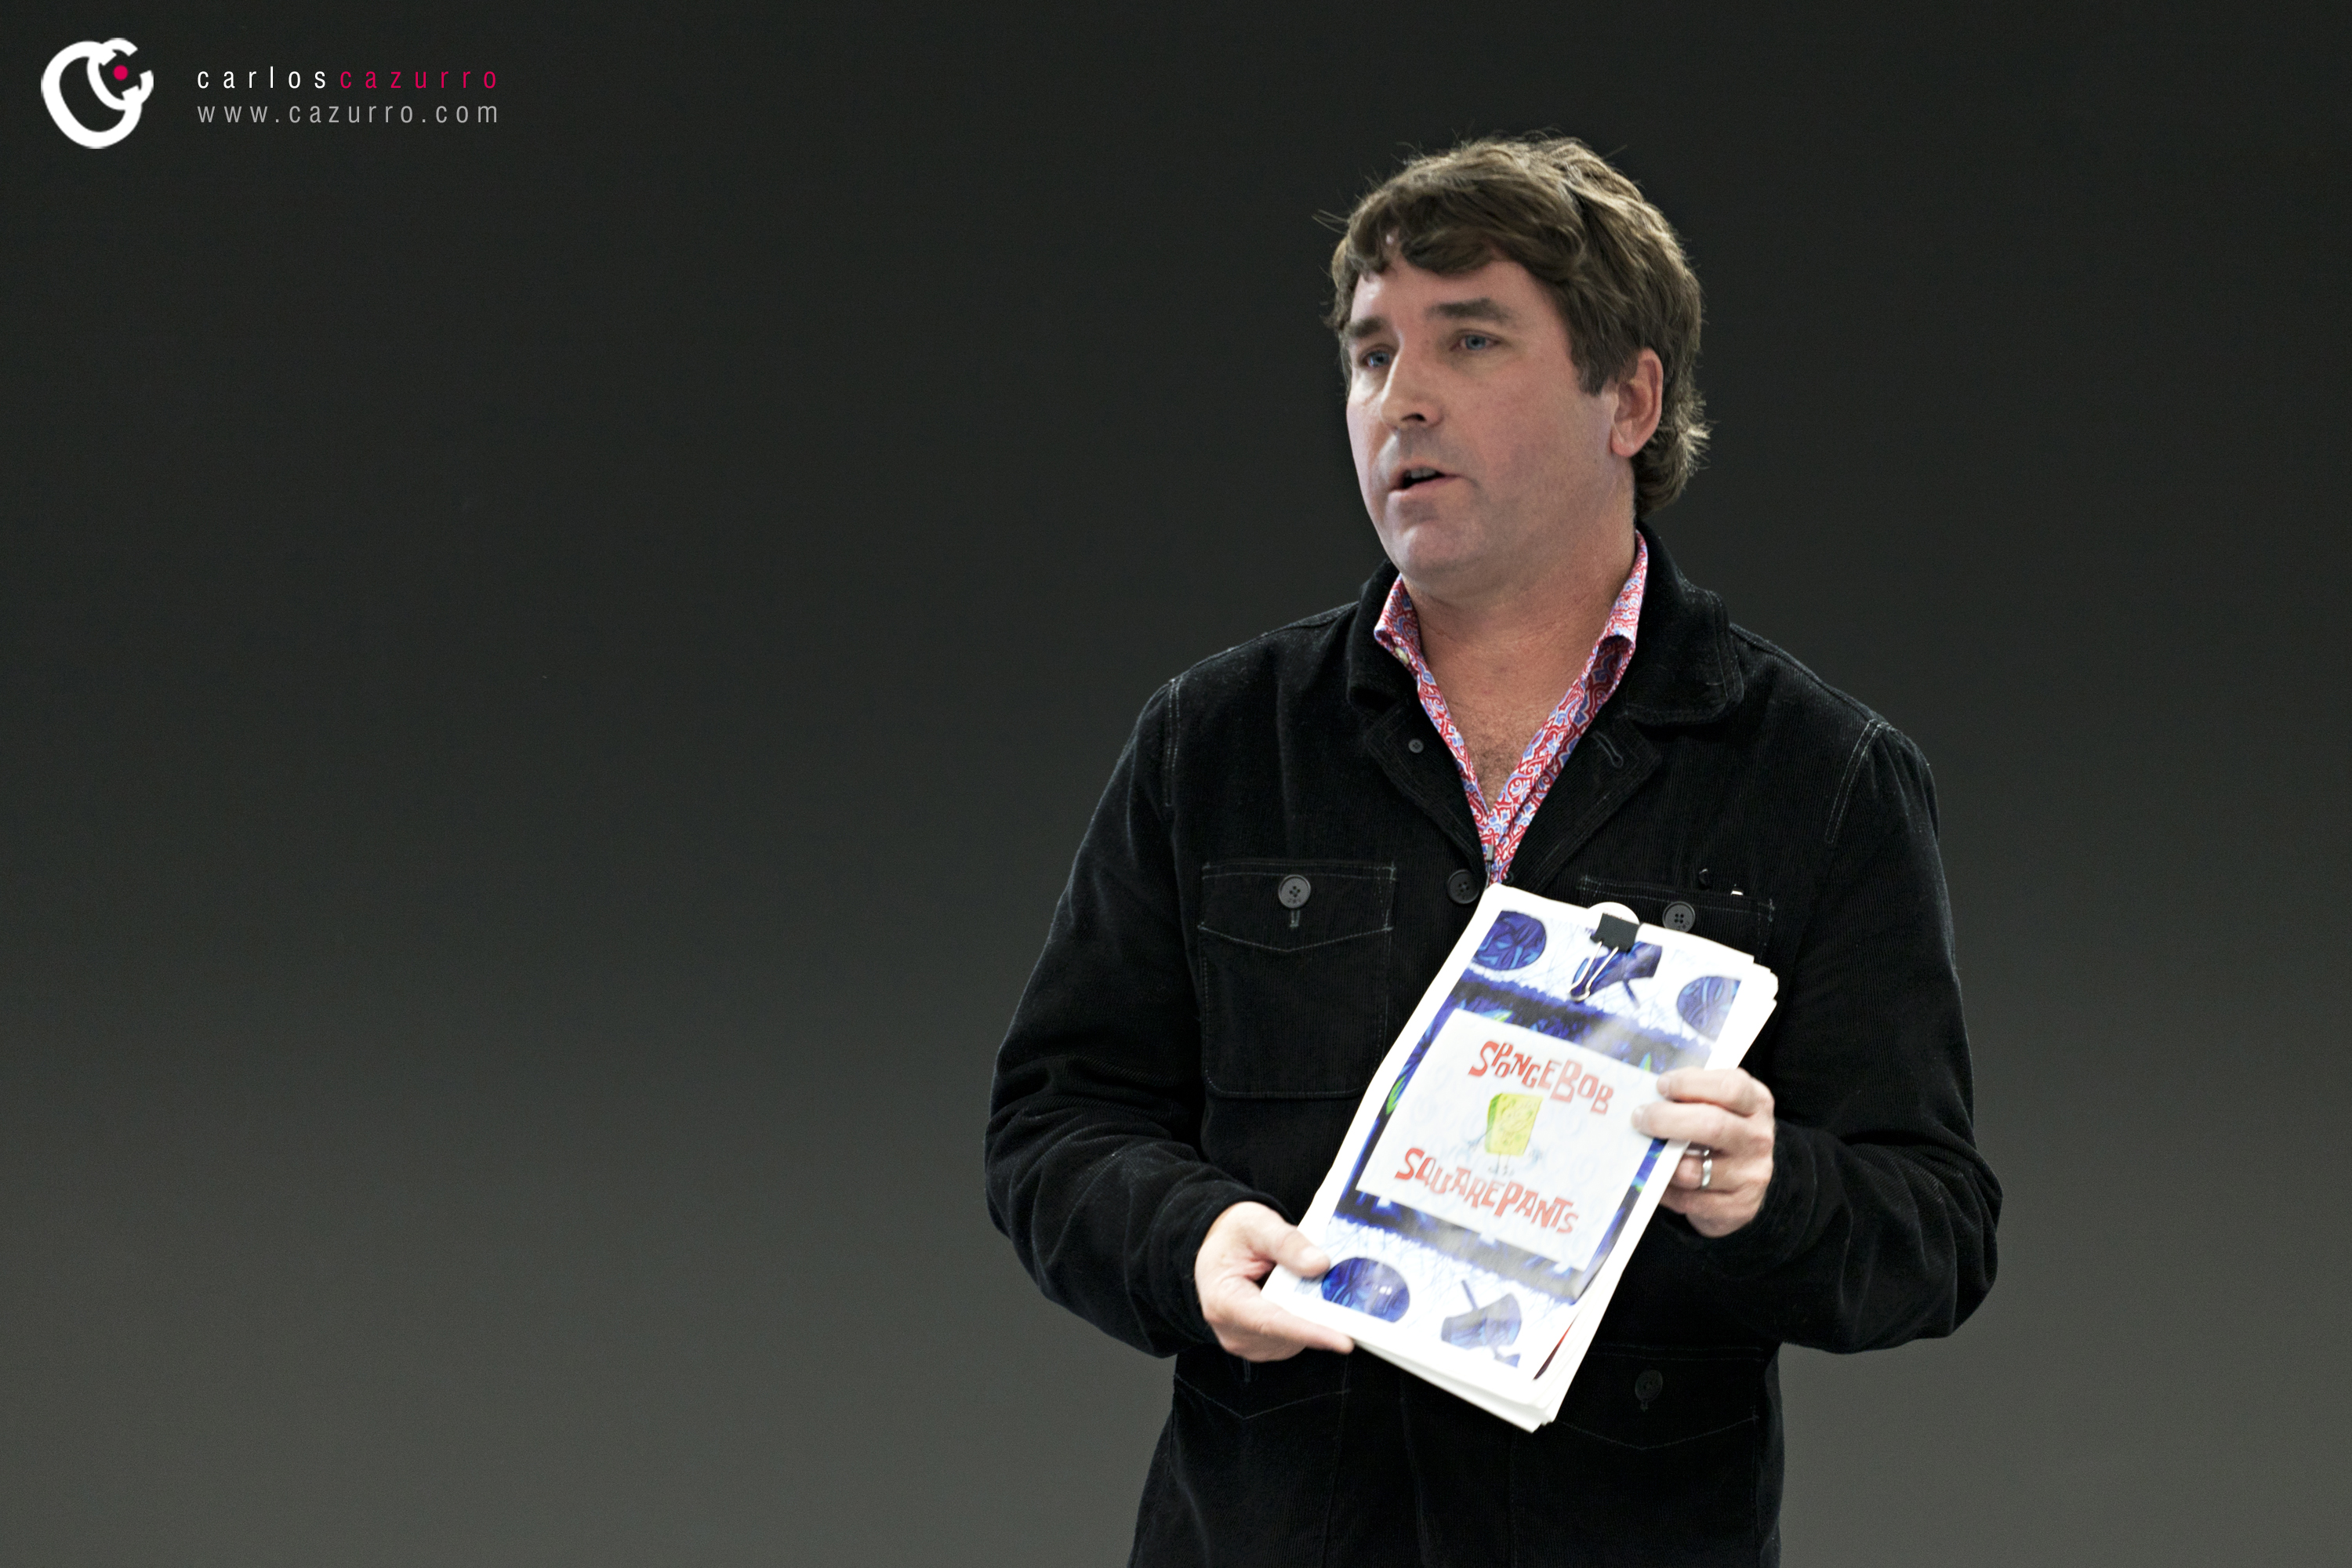 Creator Stephen Hillenburg initially conceived SpongeBob SquarePants in 1984 while he was teaching and studying marine biology at what is now the Orange County Ocean